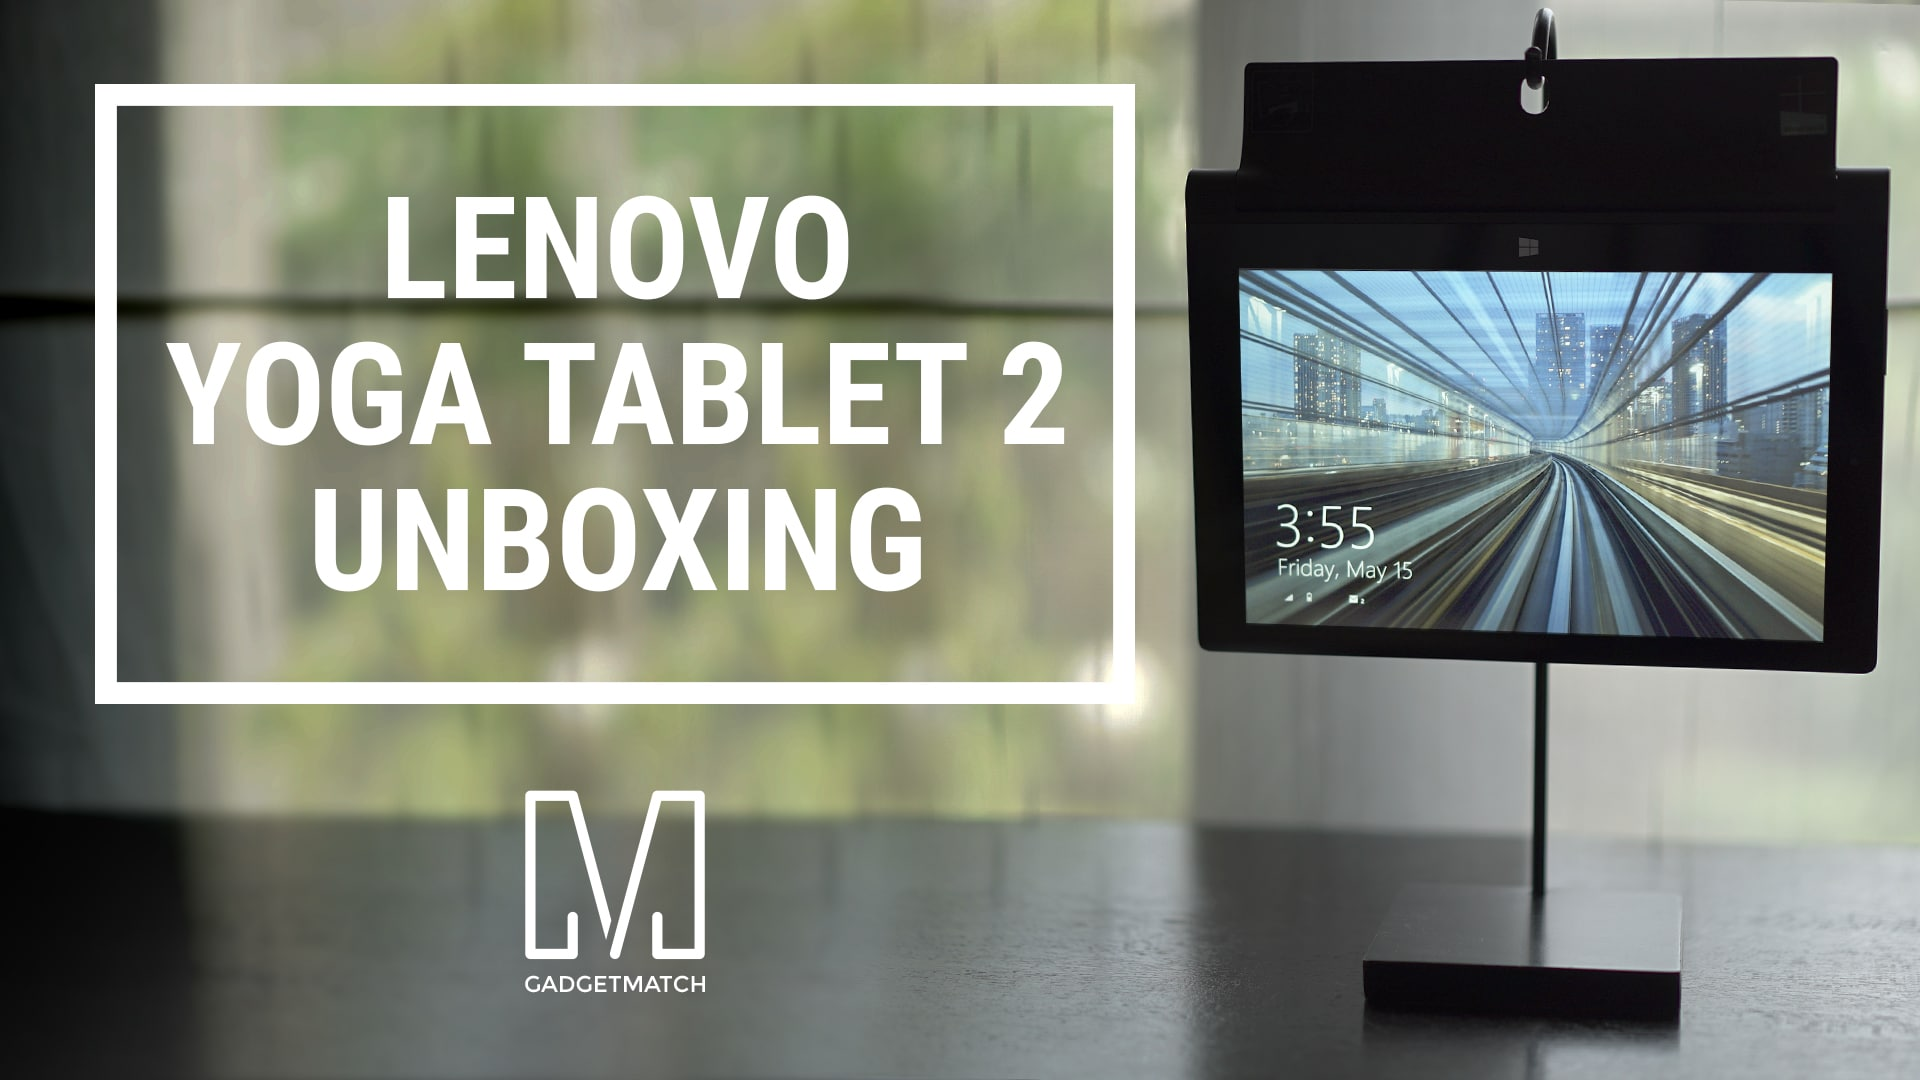 Lonovo Yoga Tablet 2